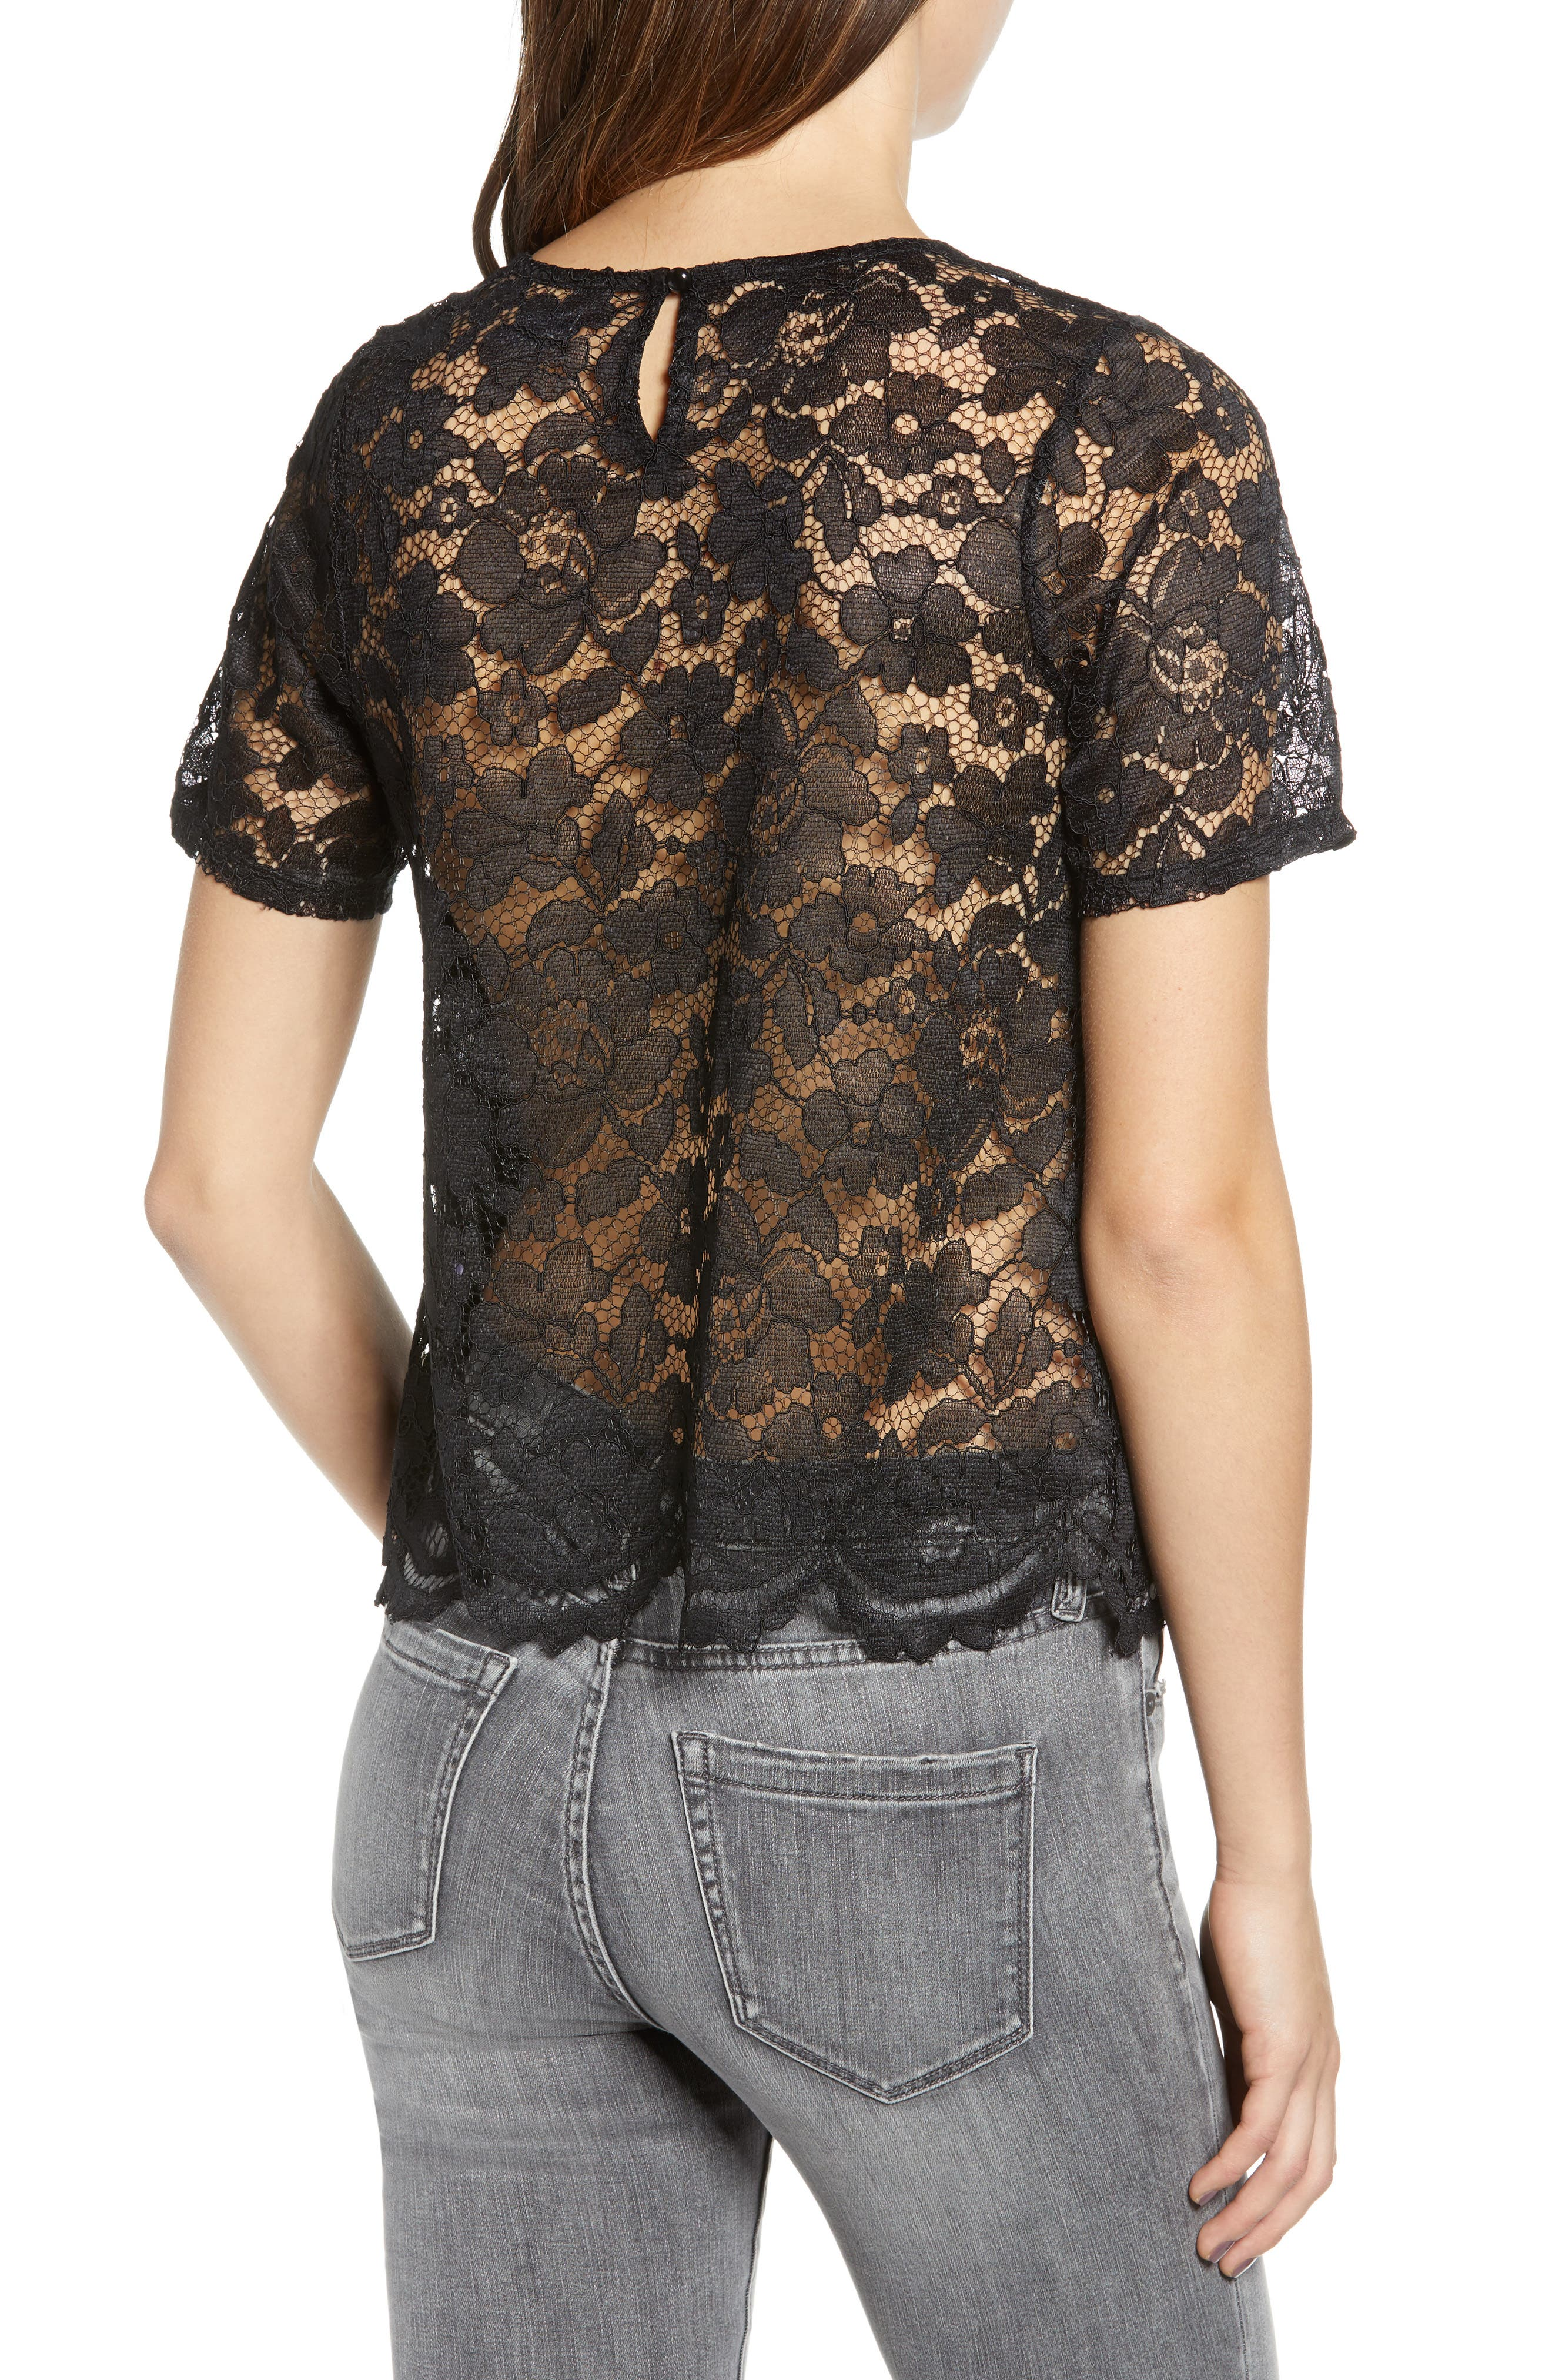 LEITH, Scalloped Lace Tee, Alternate thumbnail 2, color, BLACK